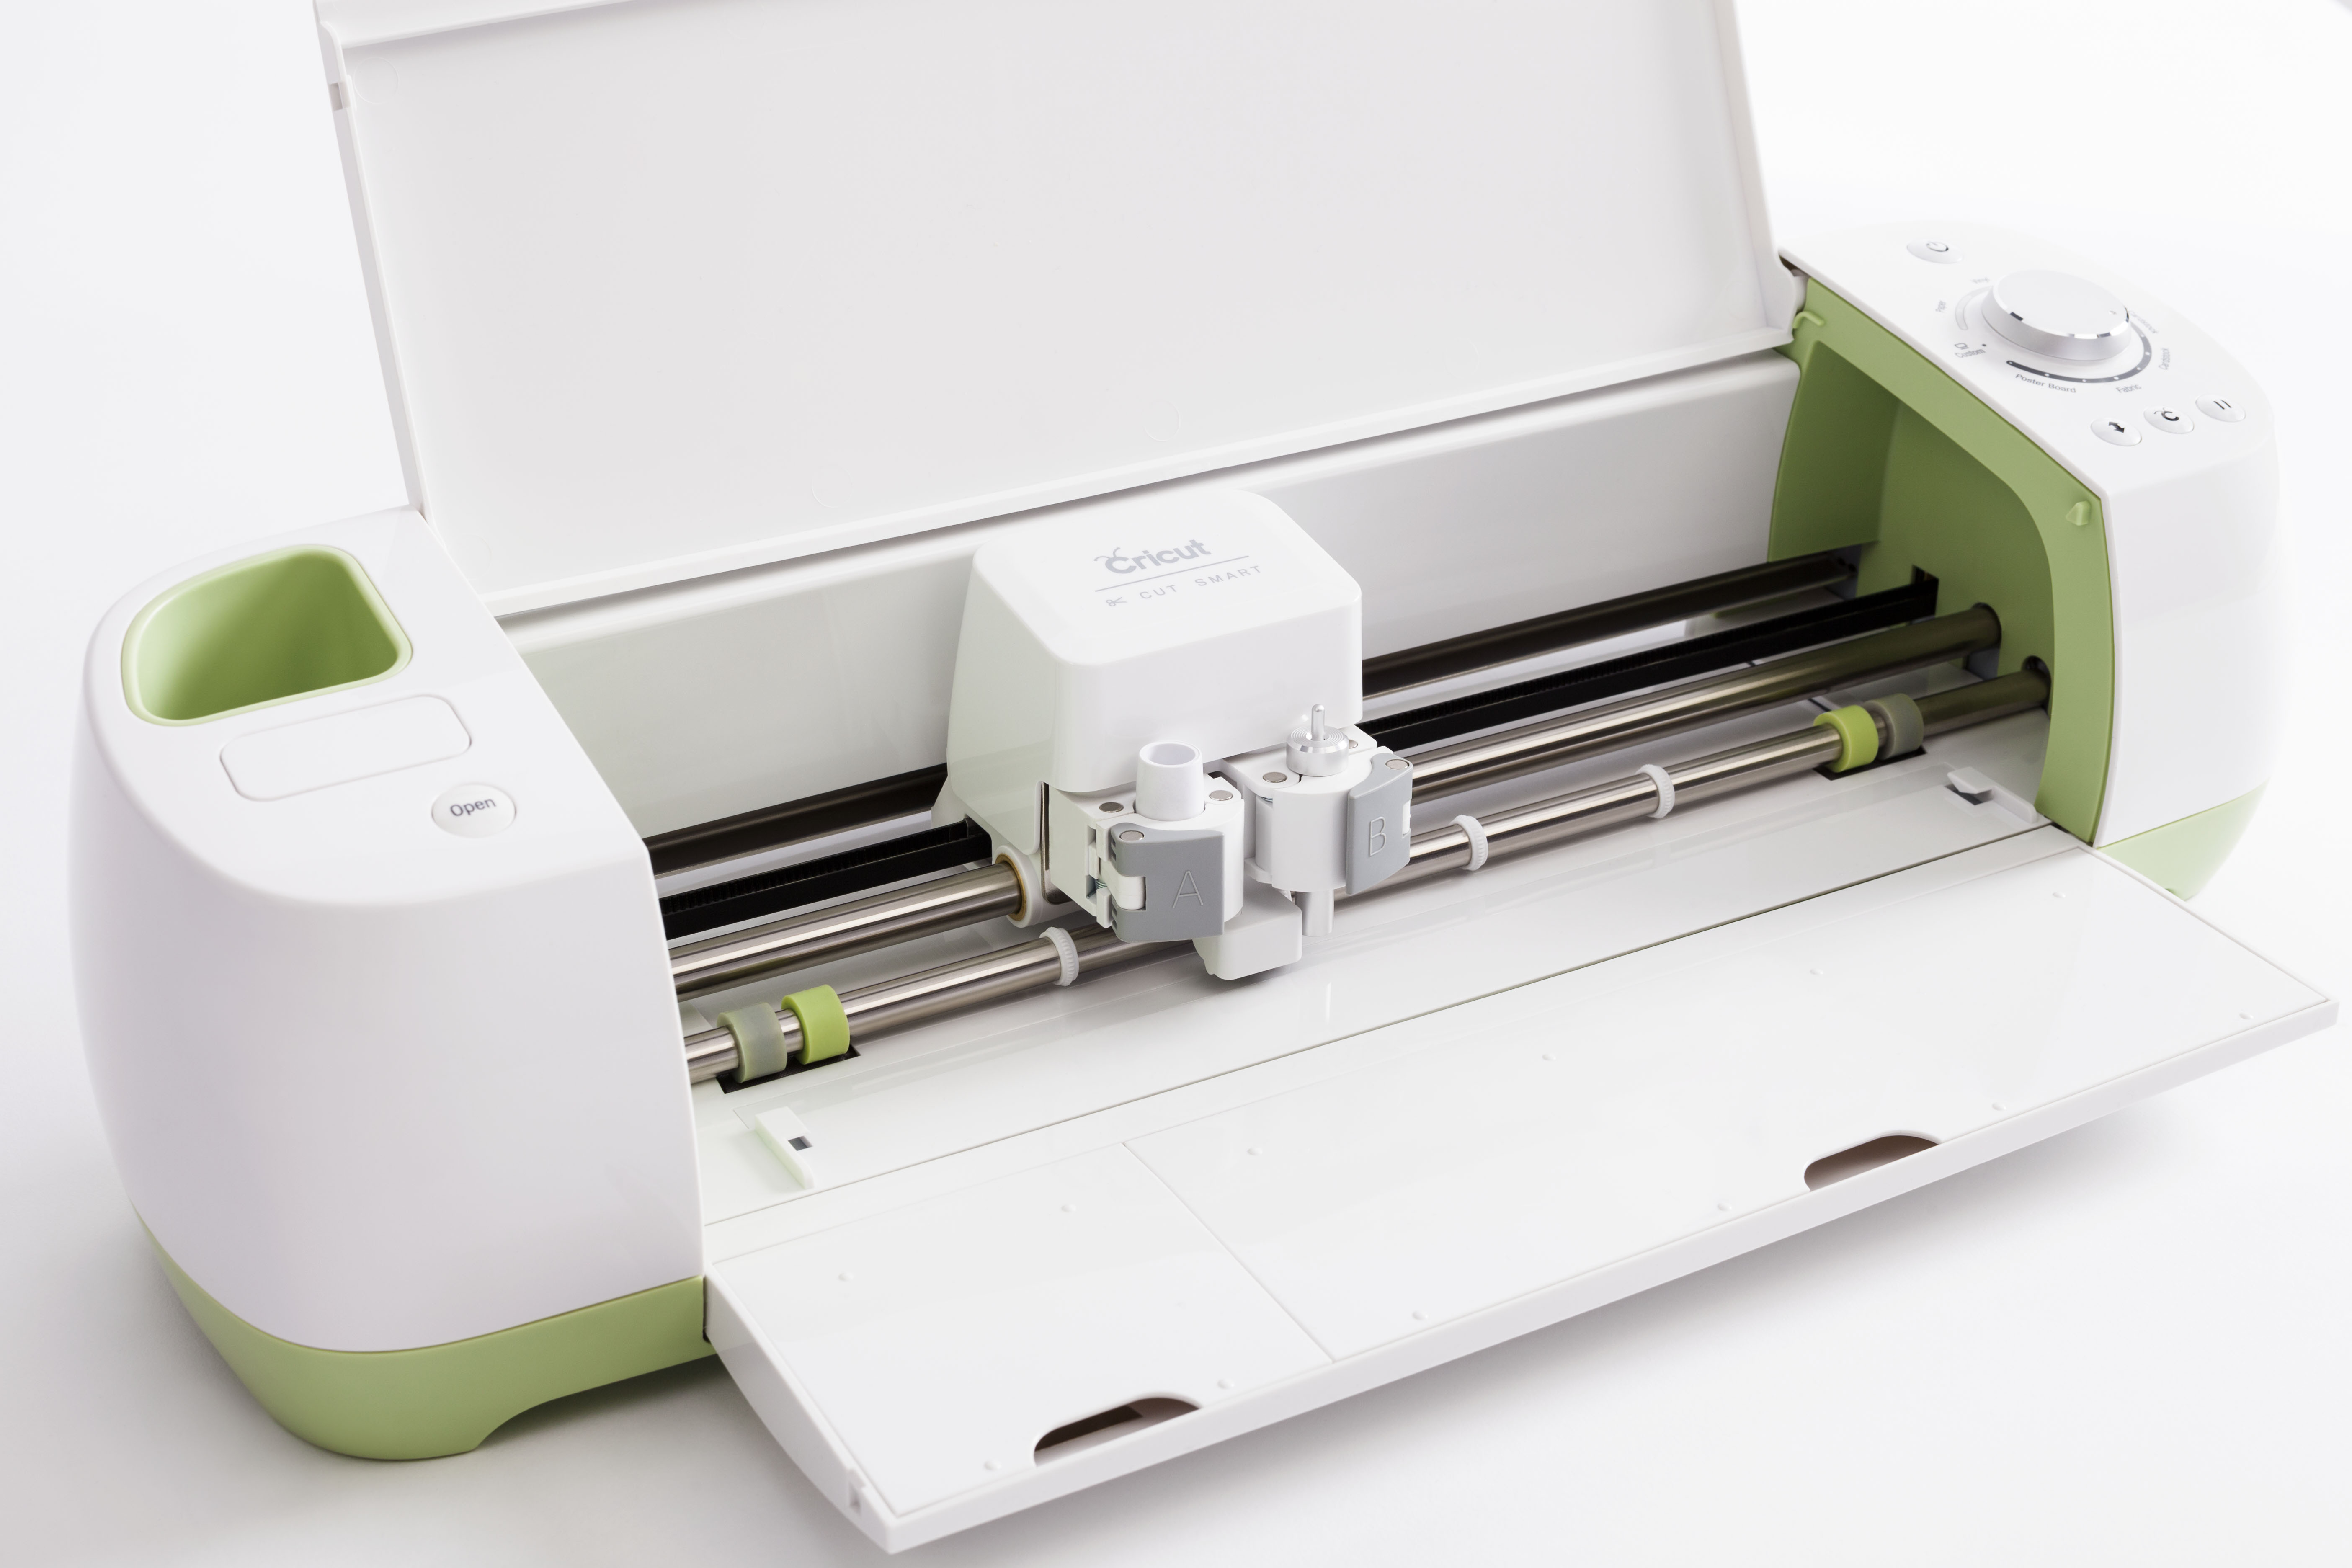 NEW MACHINE RELEASED >>> The Cricut Maker () See this Cricut Maker Review Post! IMPORTANT: The Cricut Design Space software is WEBPAGE based. You MUST have Internet connection to use it or you cannot access any images including your cartridge images. You must use the Cricut Design Space software to create anything with the Cricut.